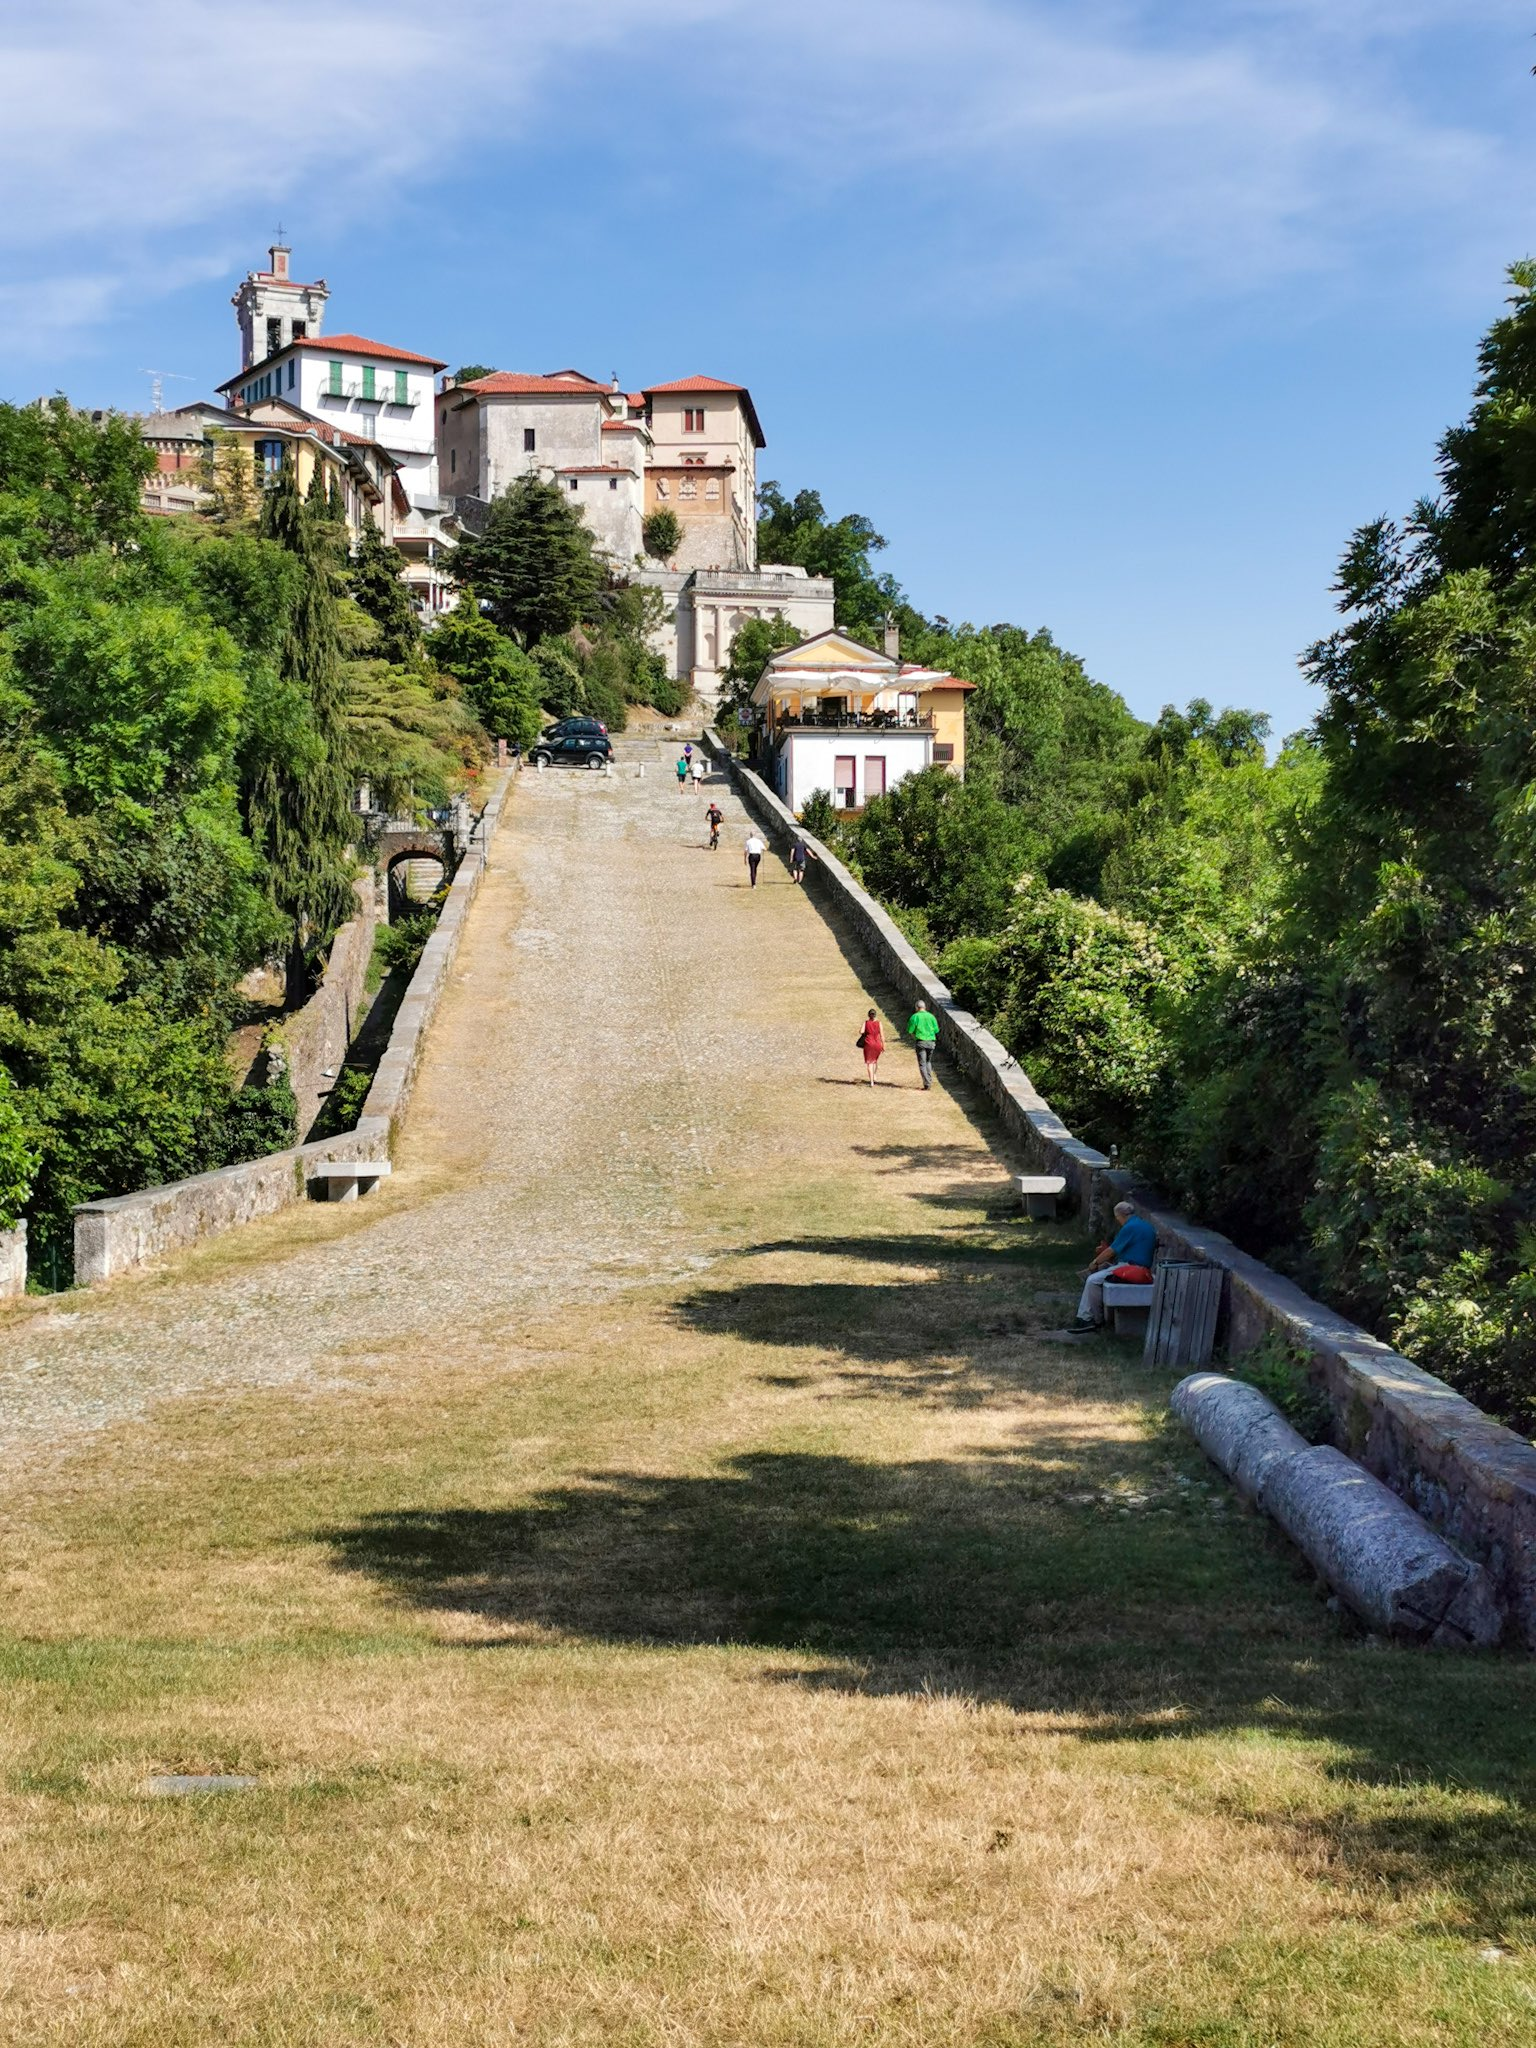 The Chapels Train at Sacro Monte di Varese